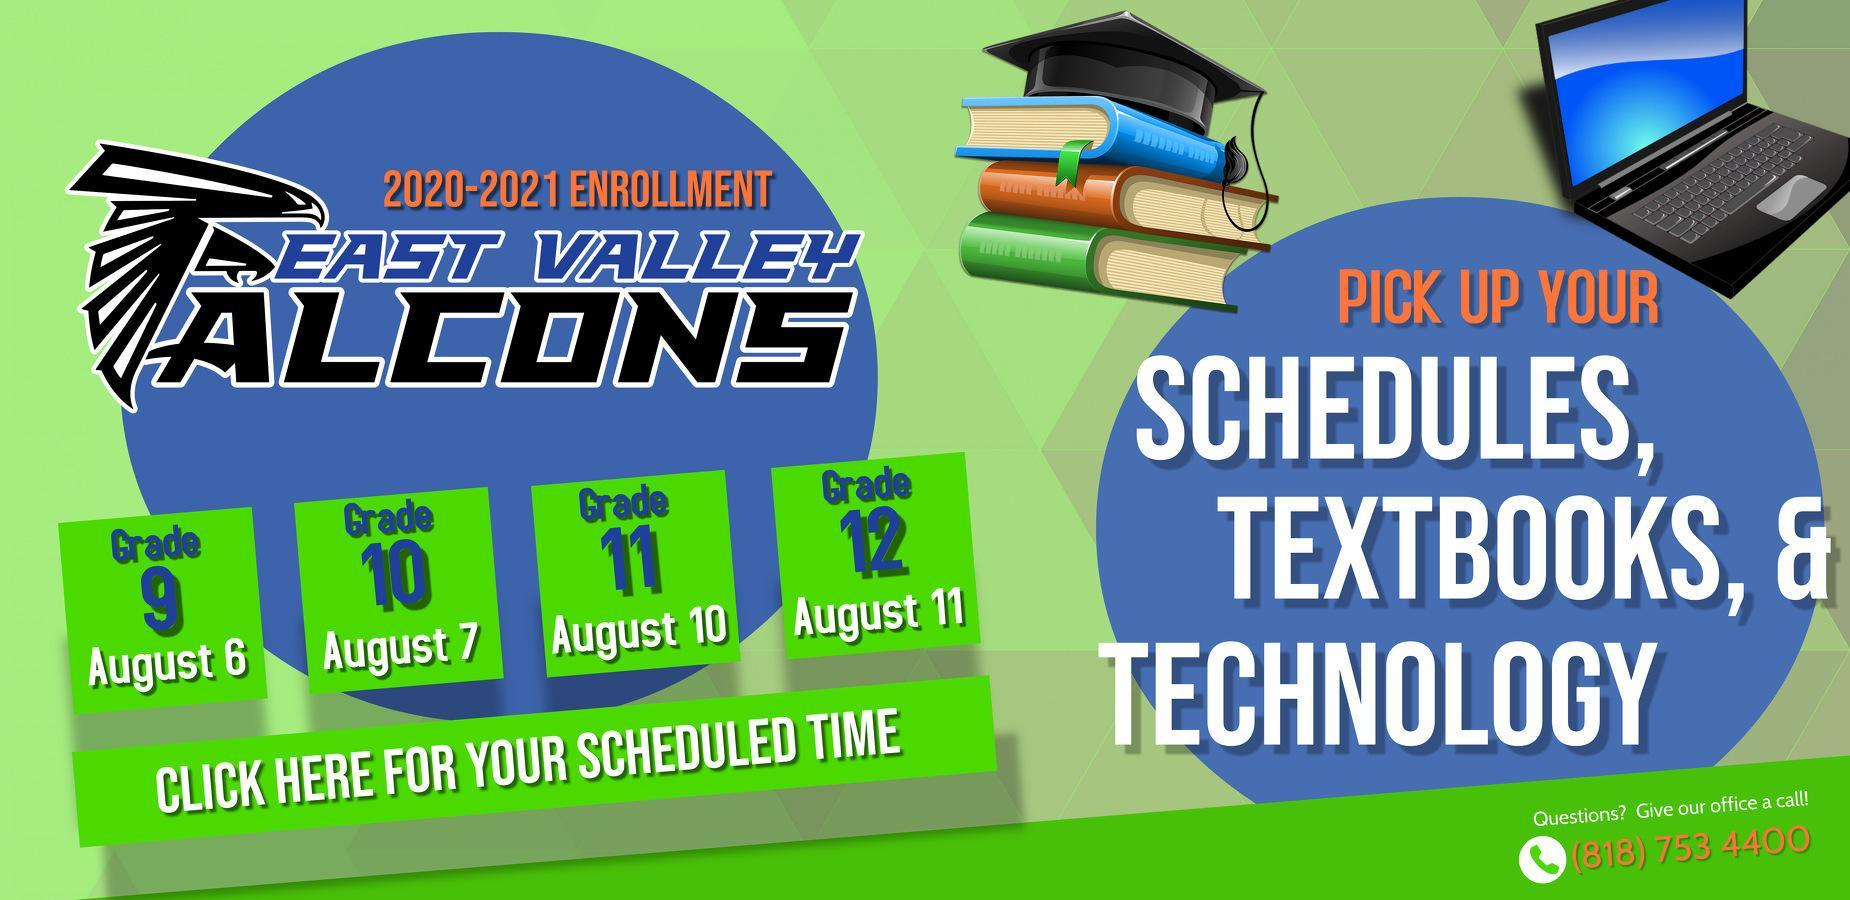 Student enrollment, schedule pick up, and textbook/device distribution information